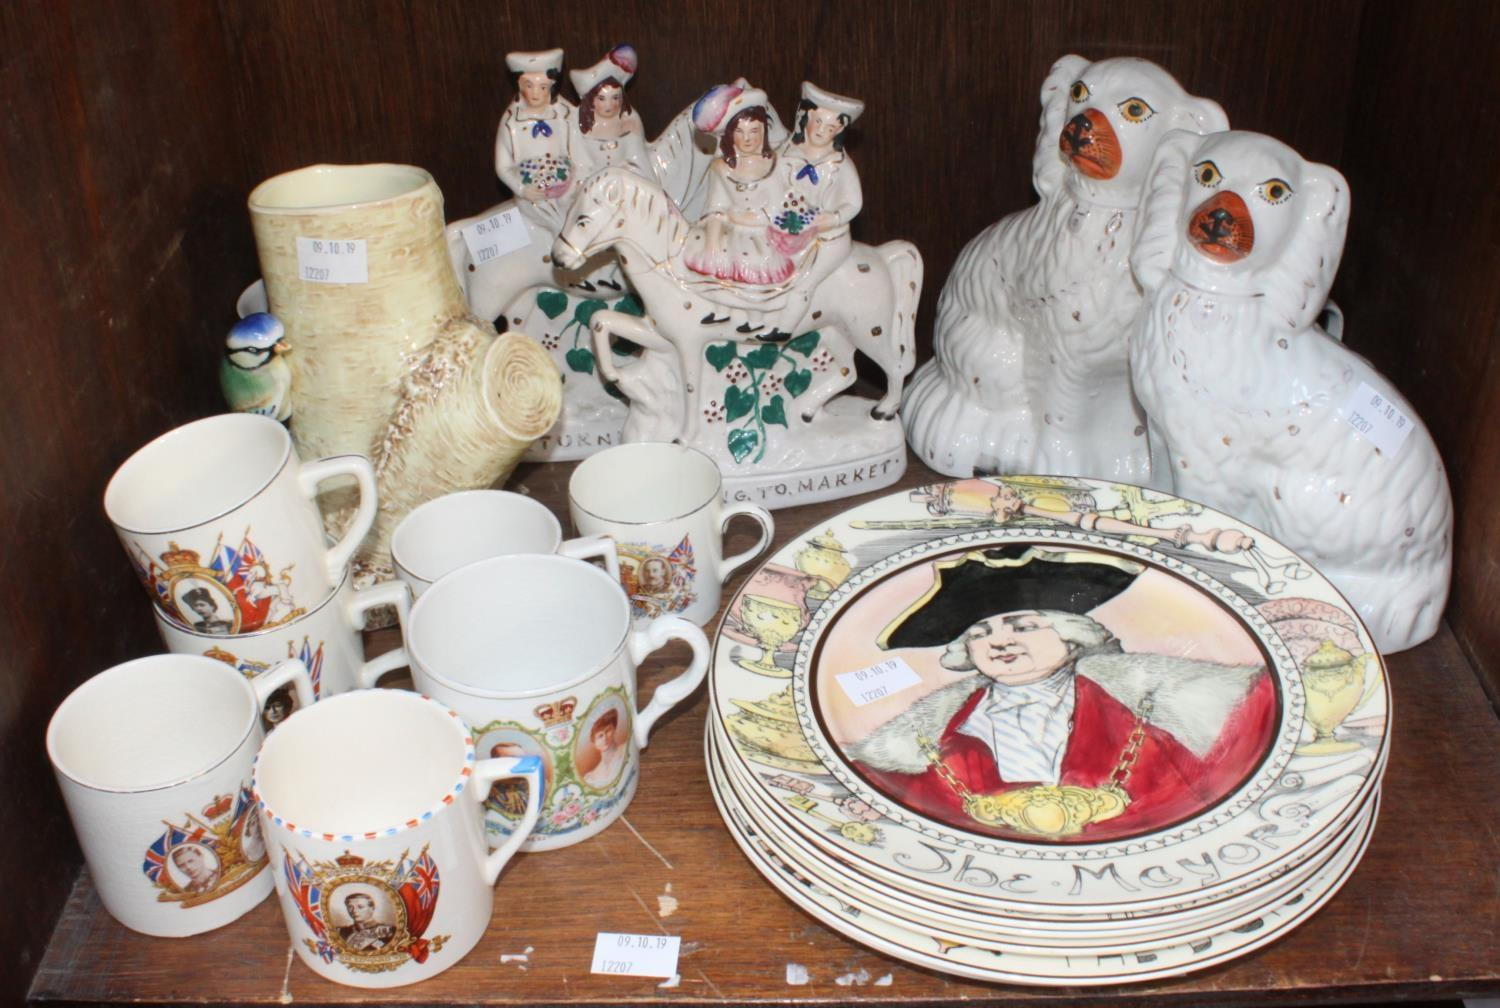 Lot 37 - SECTION 37. A pair of Staffordshire pottery seated Spaniels and a pair of figures, together with six